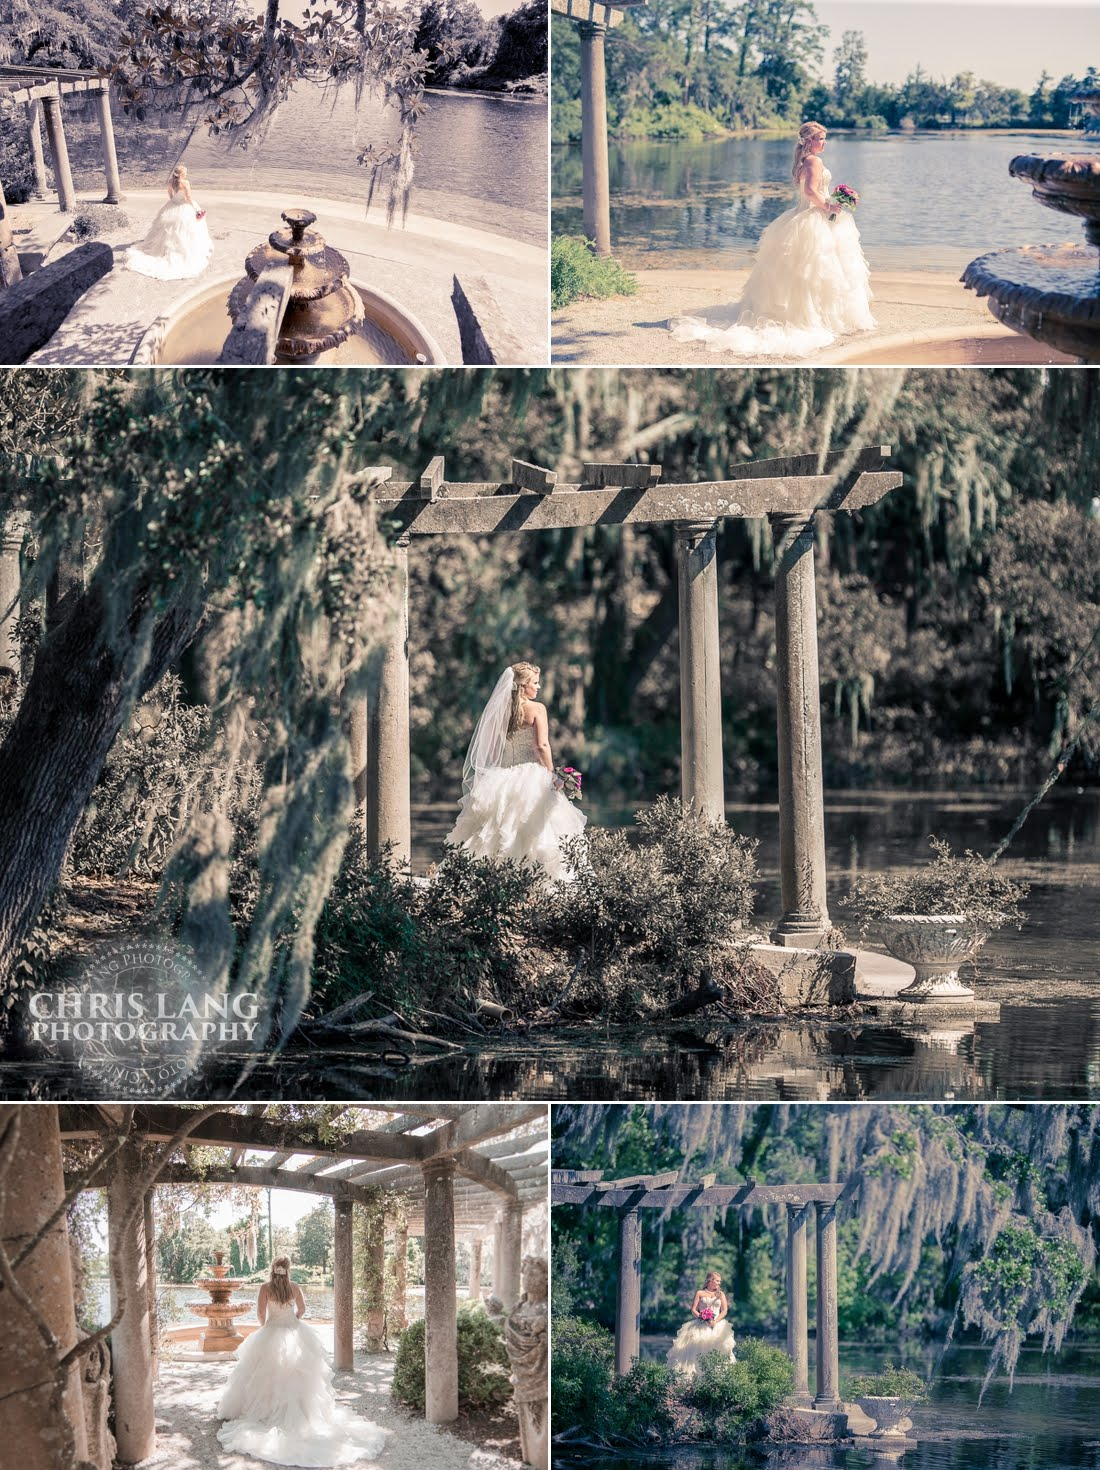 Bridal picture at the fountain -Airlie Gardens Wedding Venue - Bridal Picture Ideas - Inspiration - Bride  - Wedding Dress - Garden weddings - Chris Lang Weddings - North Carolina Wedding Photographers